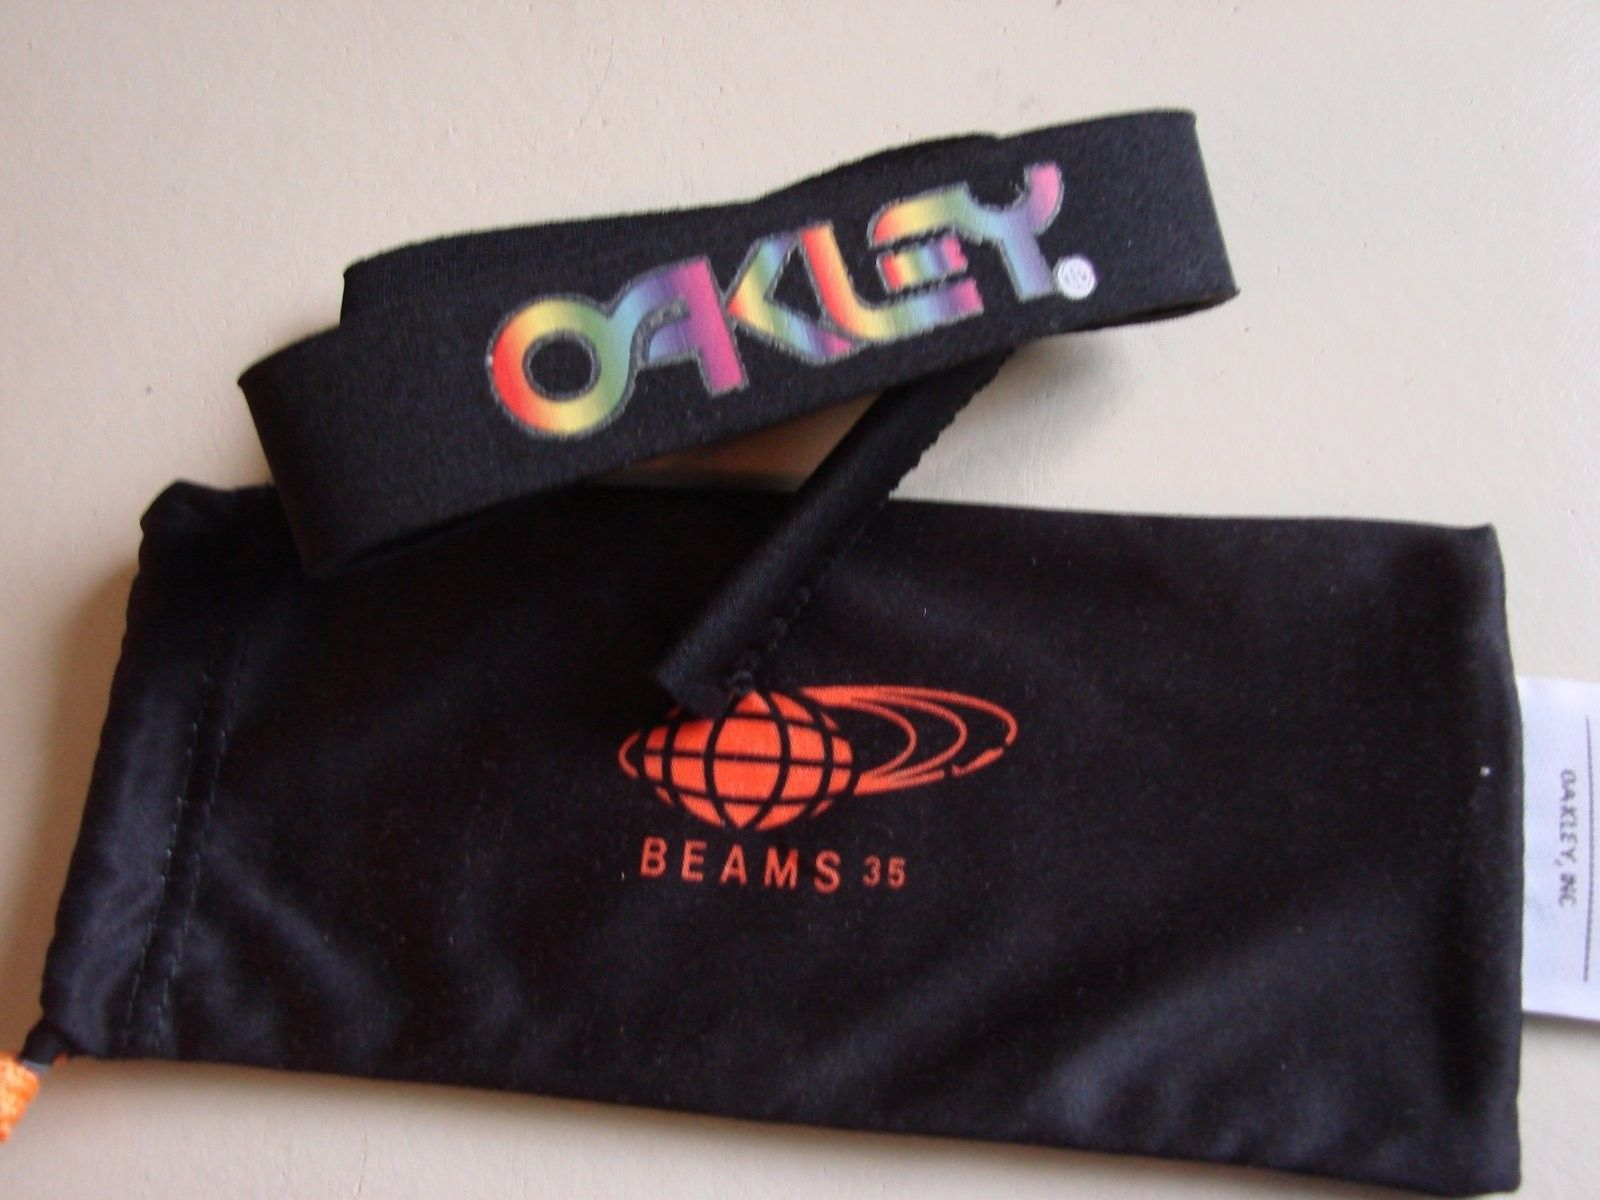 SOLD - BEAMS 35th Anniversary - Black/Navy Fade - DSC00016.JPG